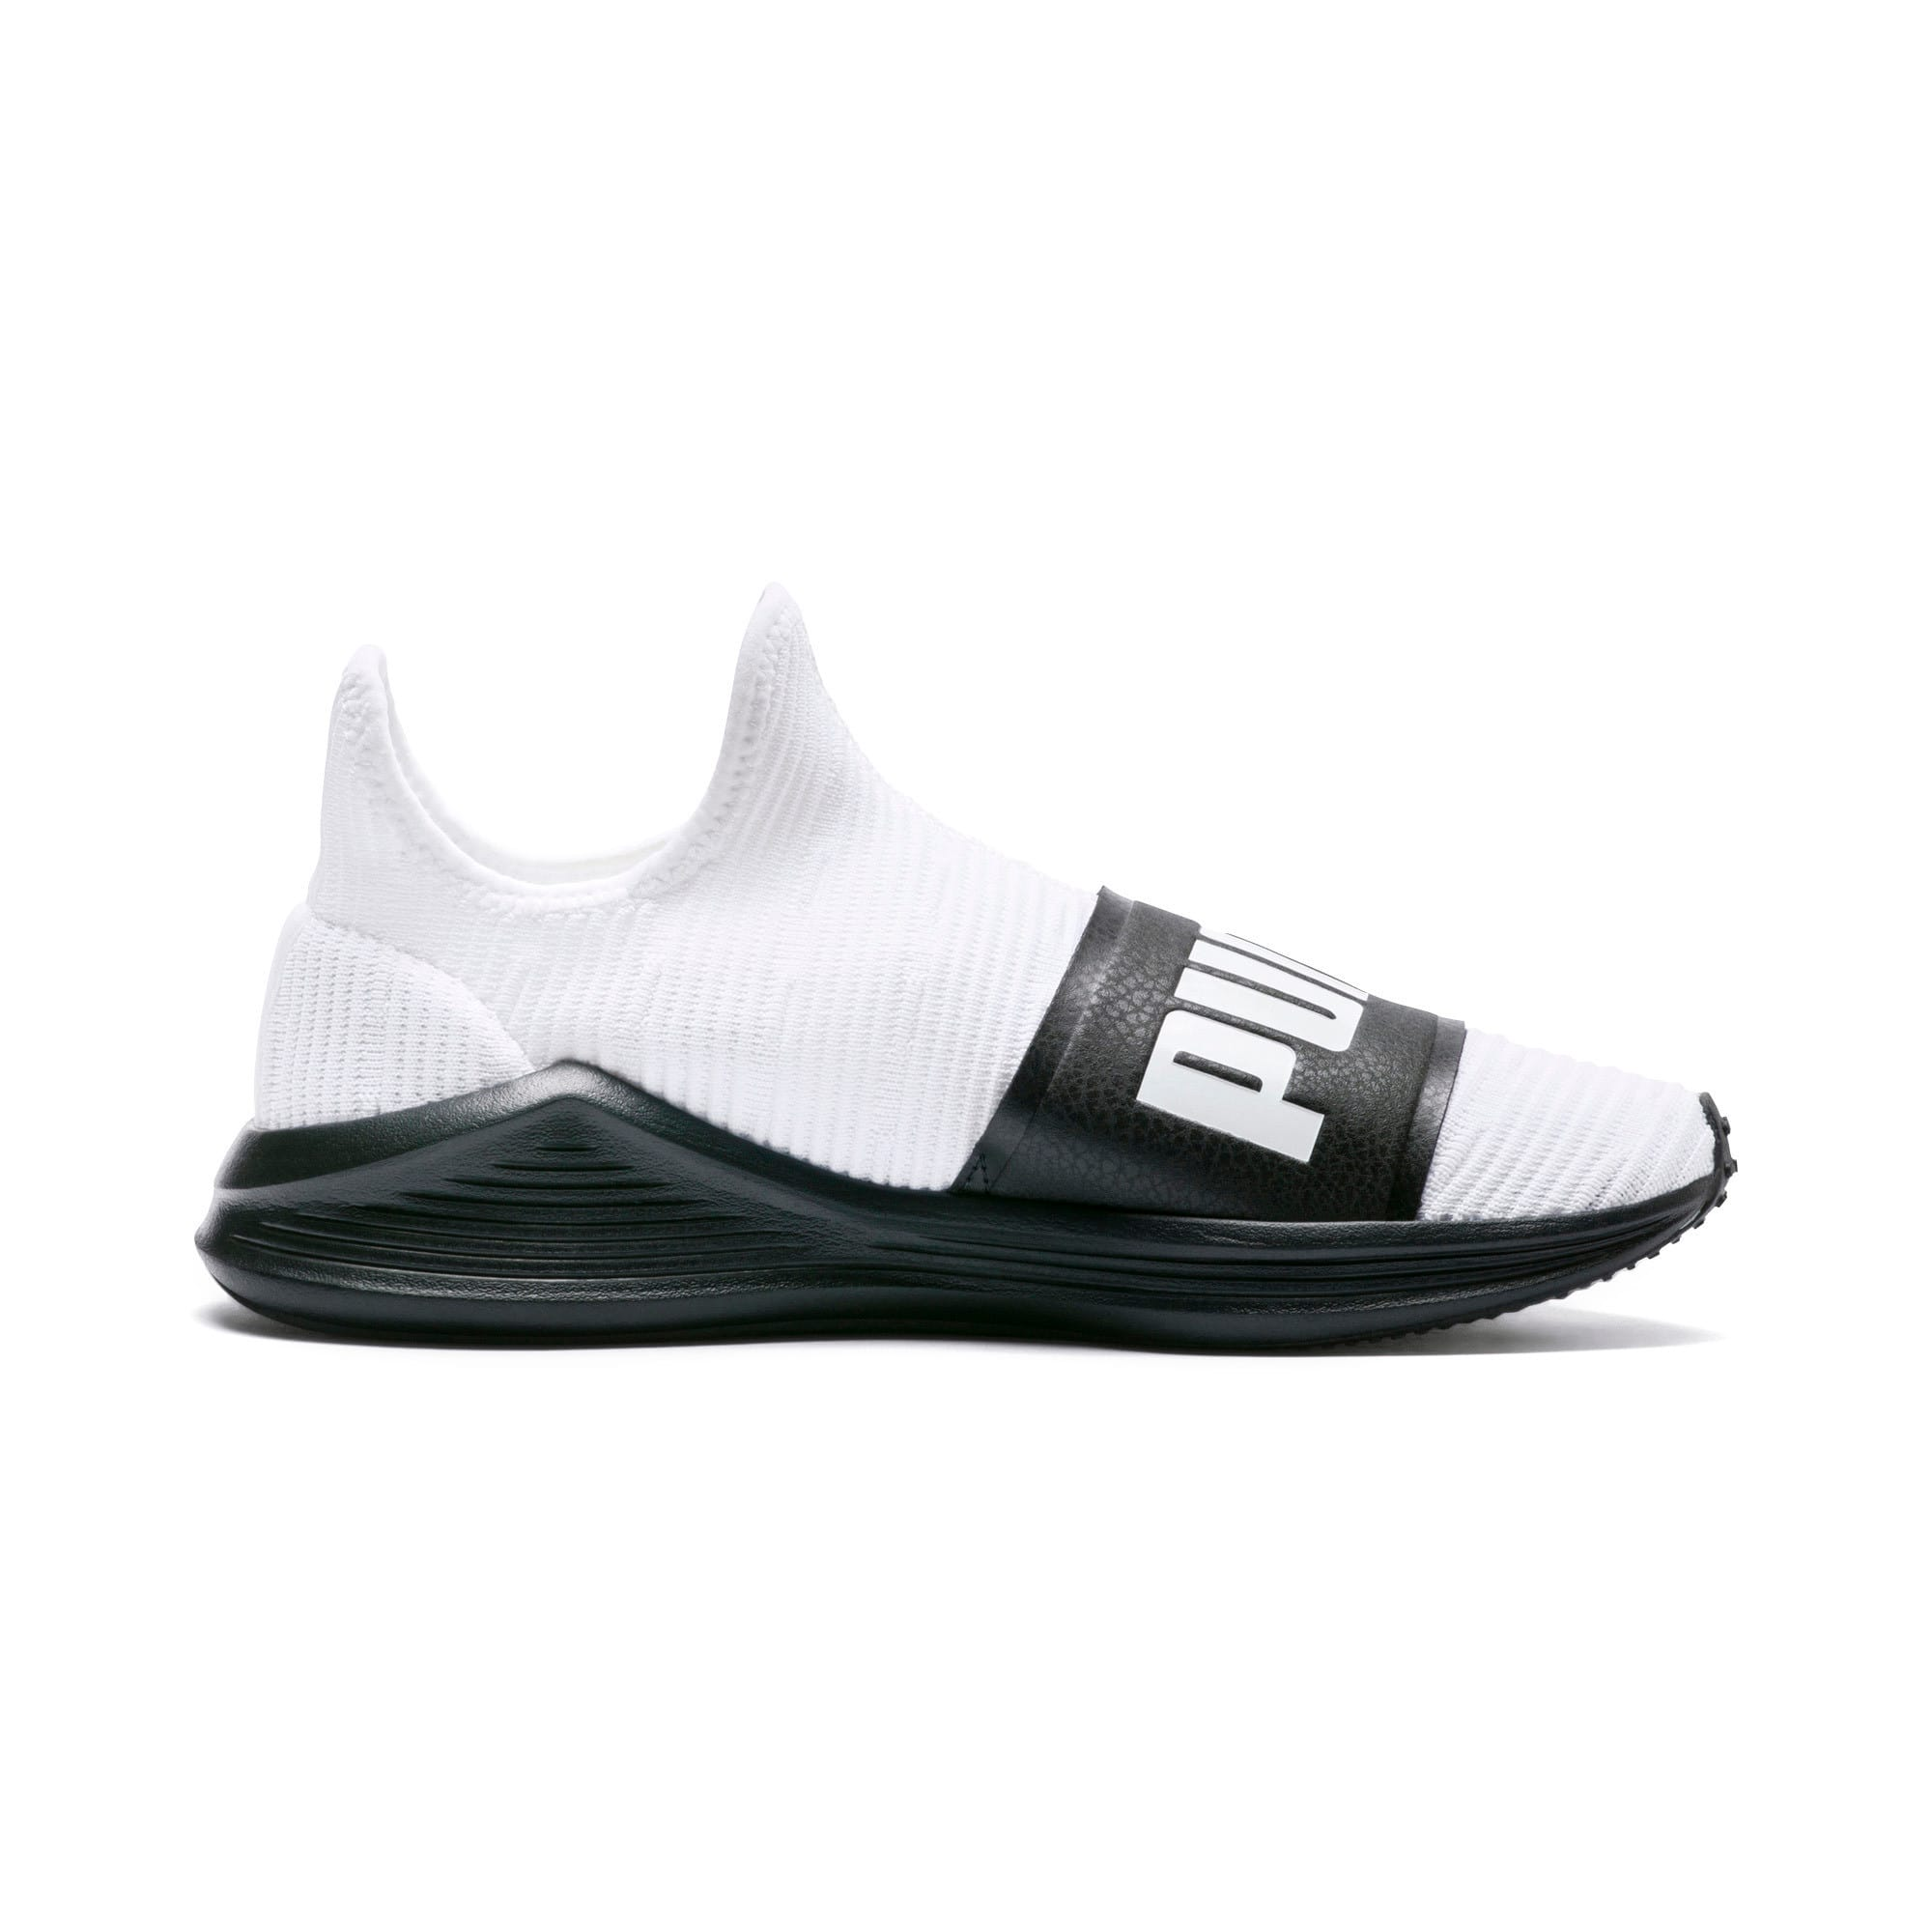 Thumbnail 5 of Fierce Slide Women's Trainers, Puma White-Puma Black, medium-IND